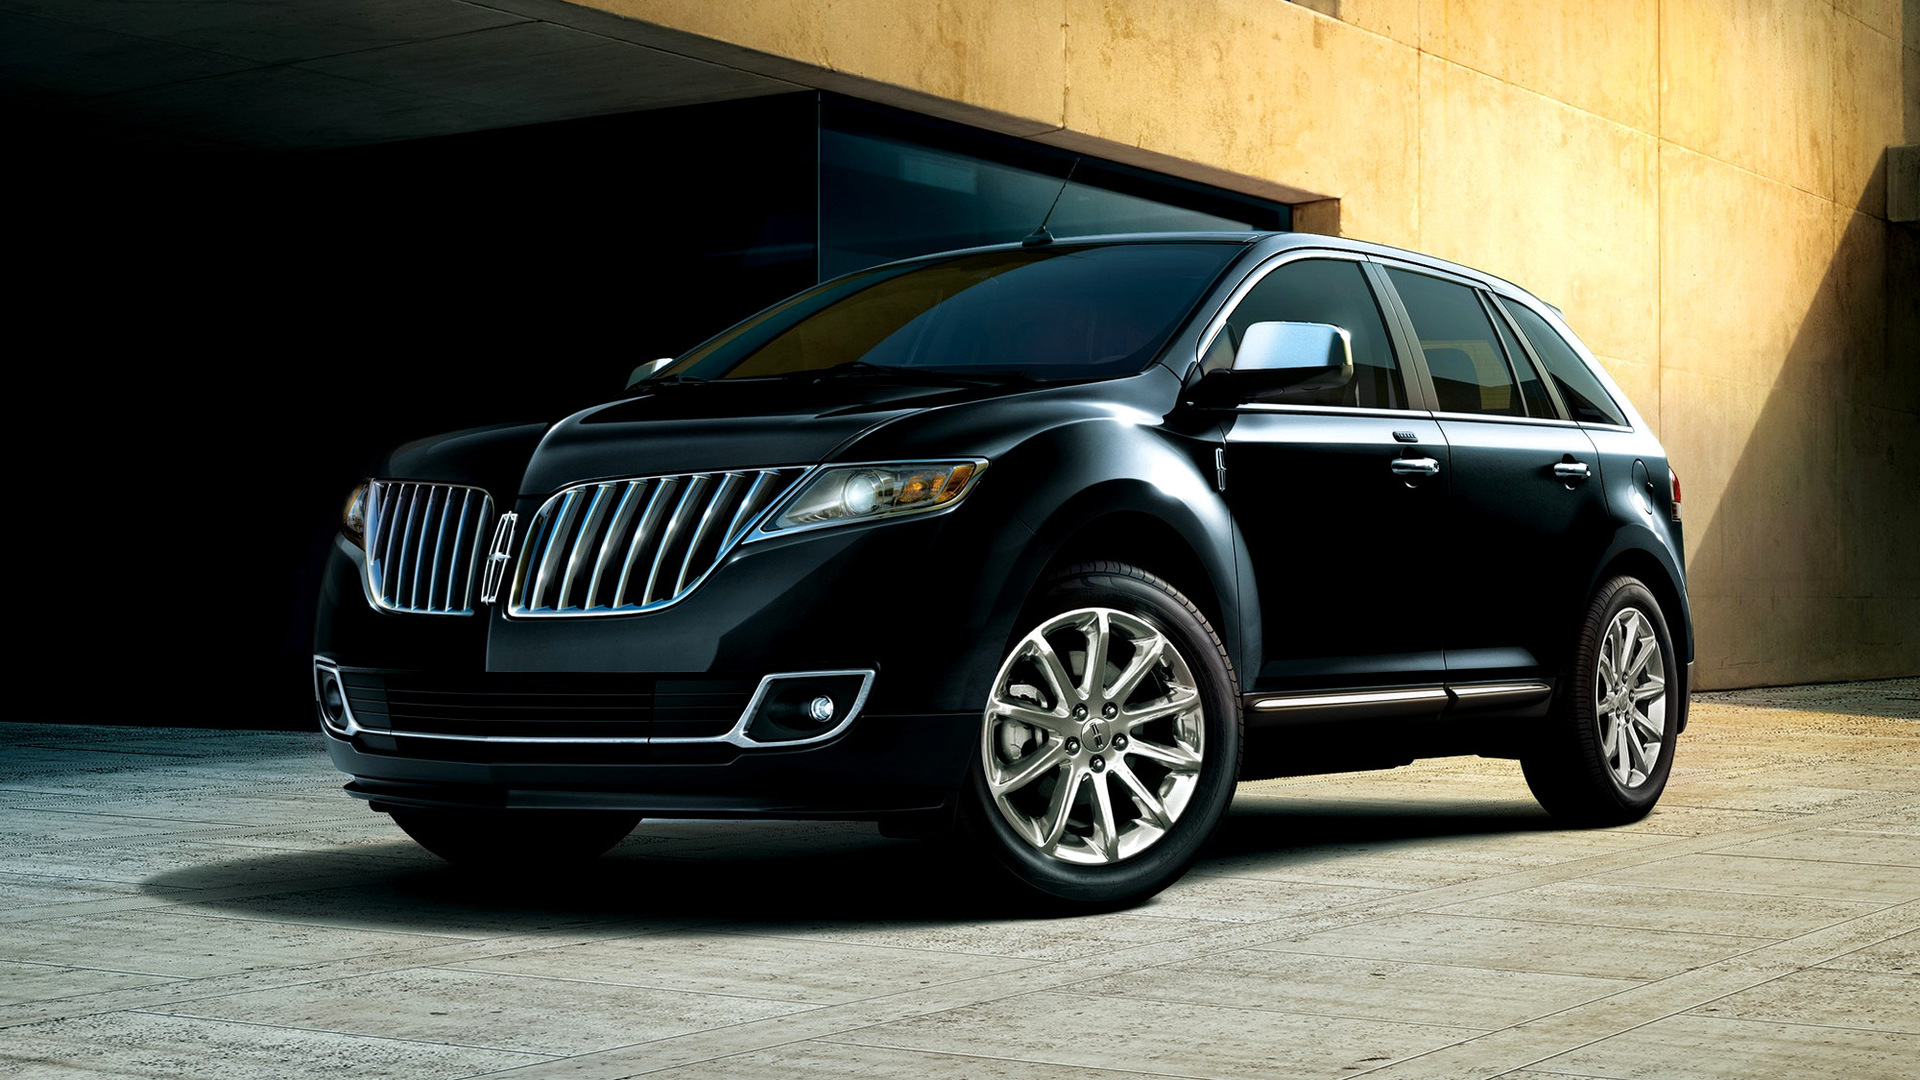 2016 Lincoln Mkt >> Lincoln MKX (2010) Wallpapers and HD Images - Car Pixel